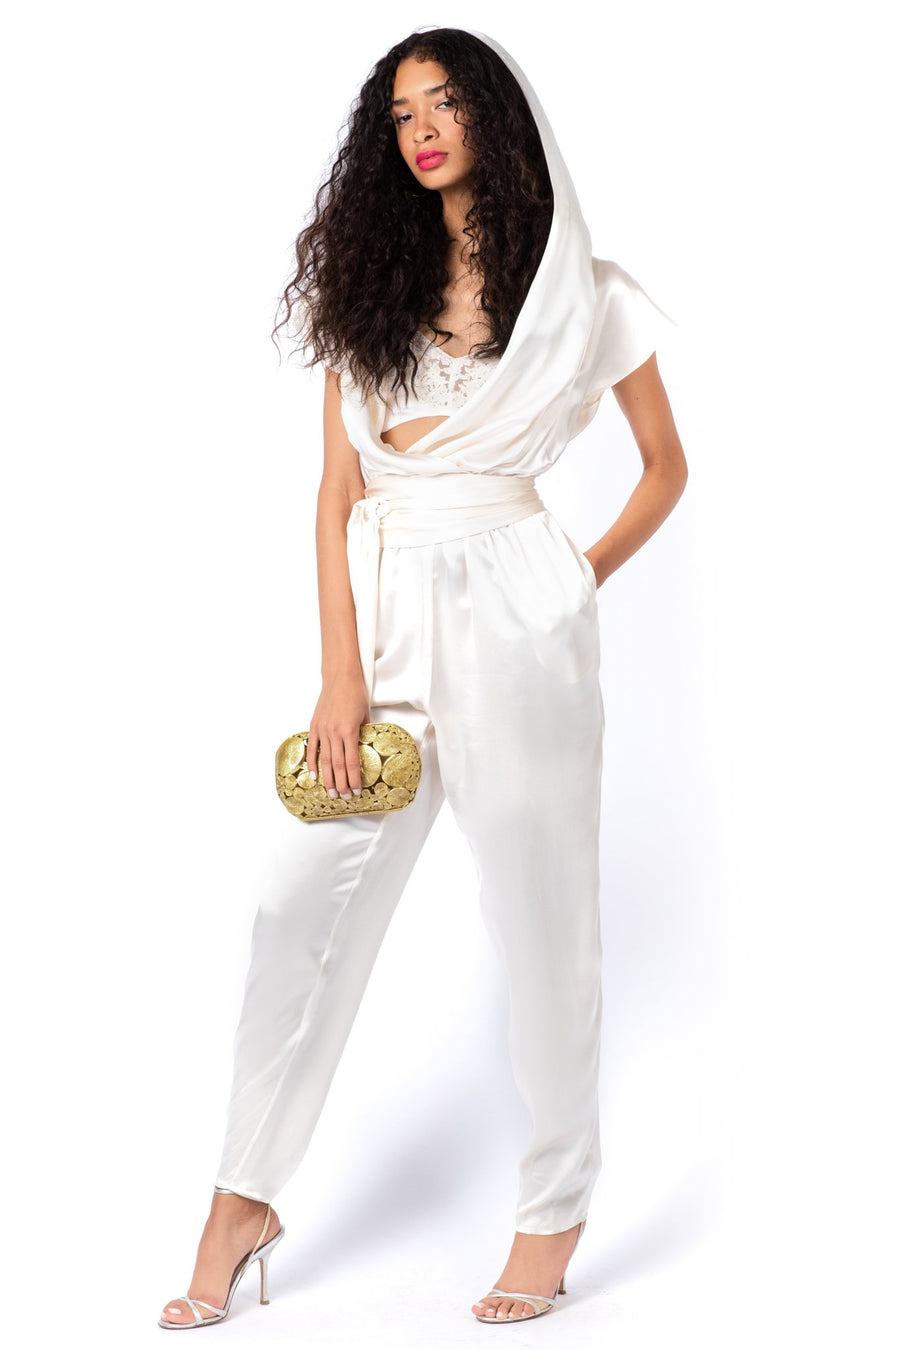 This is a photo of a woman wearing an ivory, silk charmeuse bralette that is trimmed with a delicate lace. With the bralette she is wearing an ivory, silk charmeuse, hooded jumpsuit.